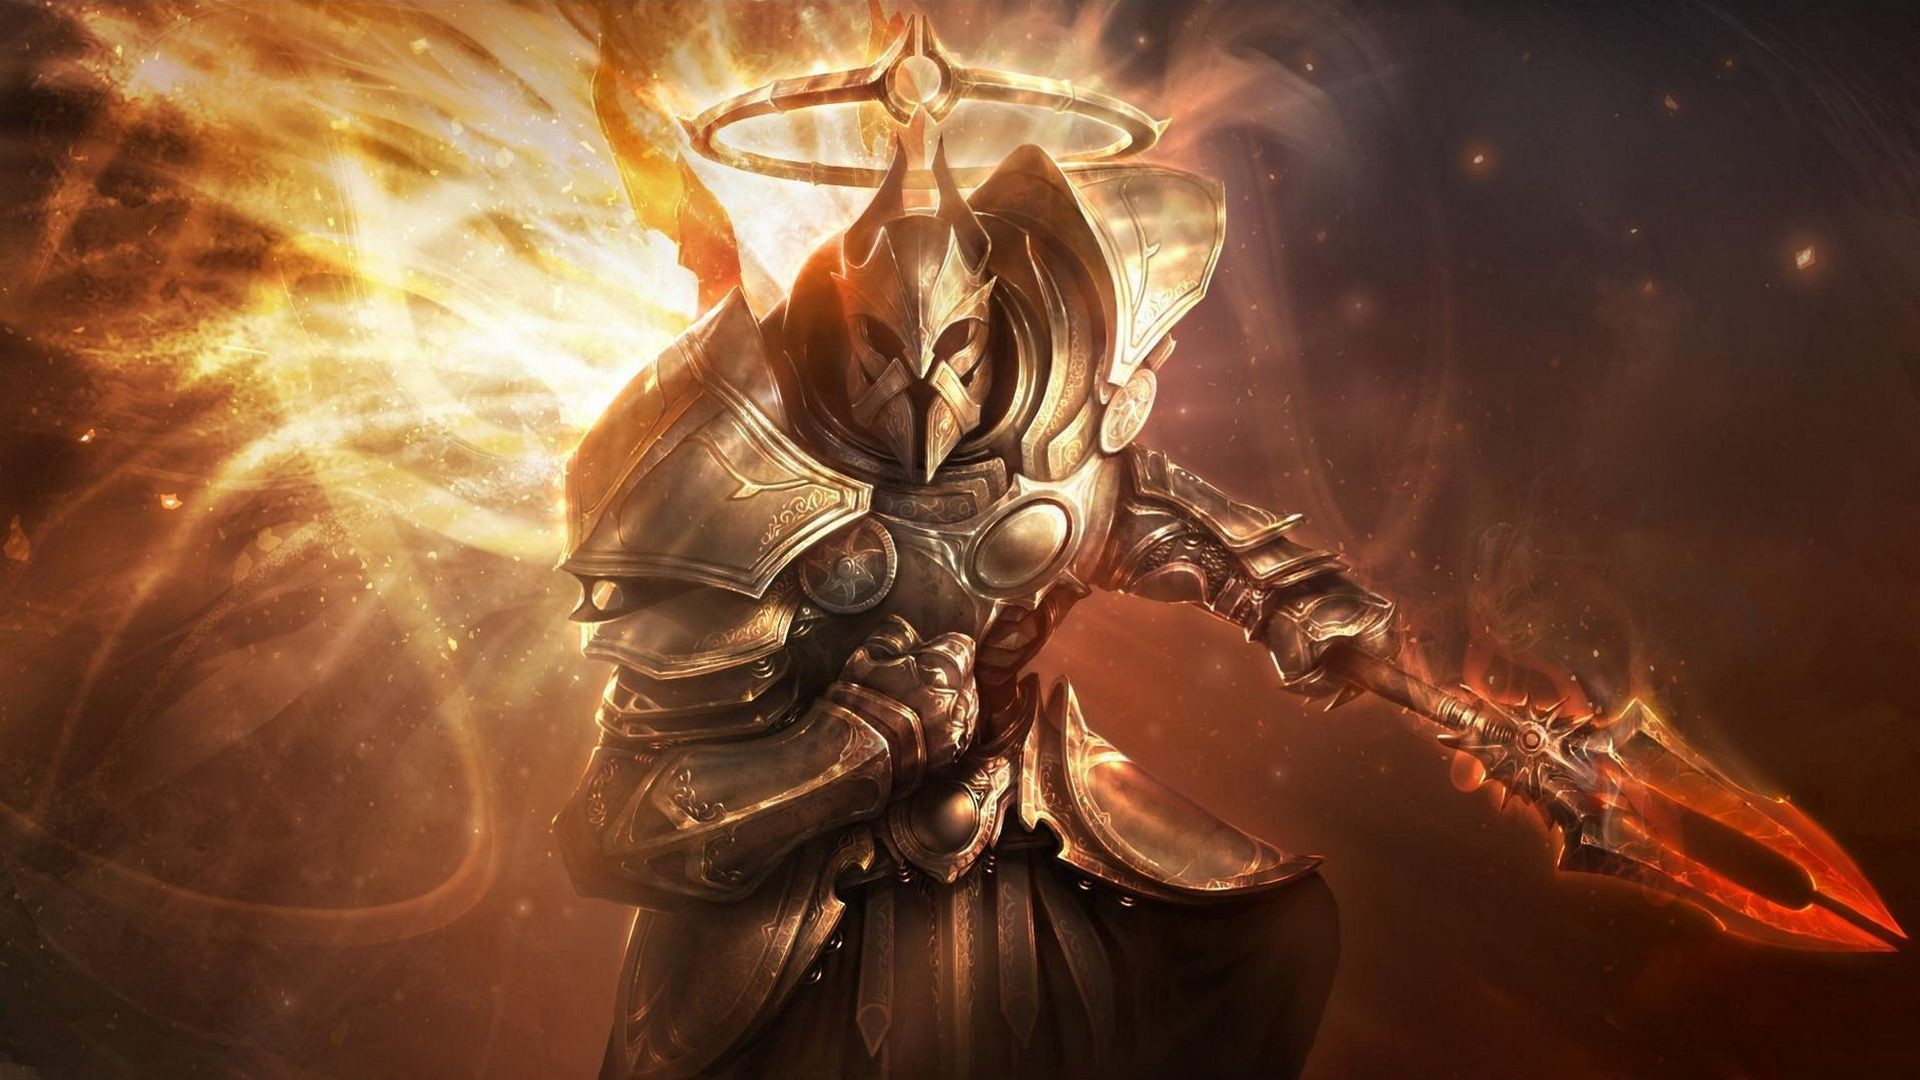 Res: 1920x1080, Diablo Wallpapers Group 1366×768 Diablo 3 Tyrael Wallpapers (33 Wallpapers)  | Adorable Wallpapers